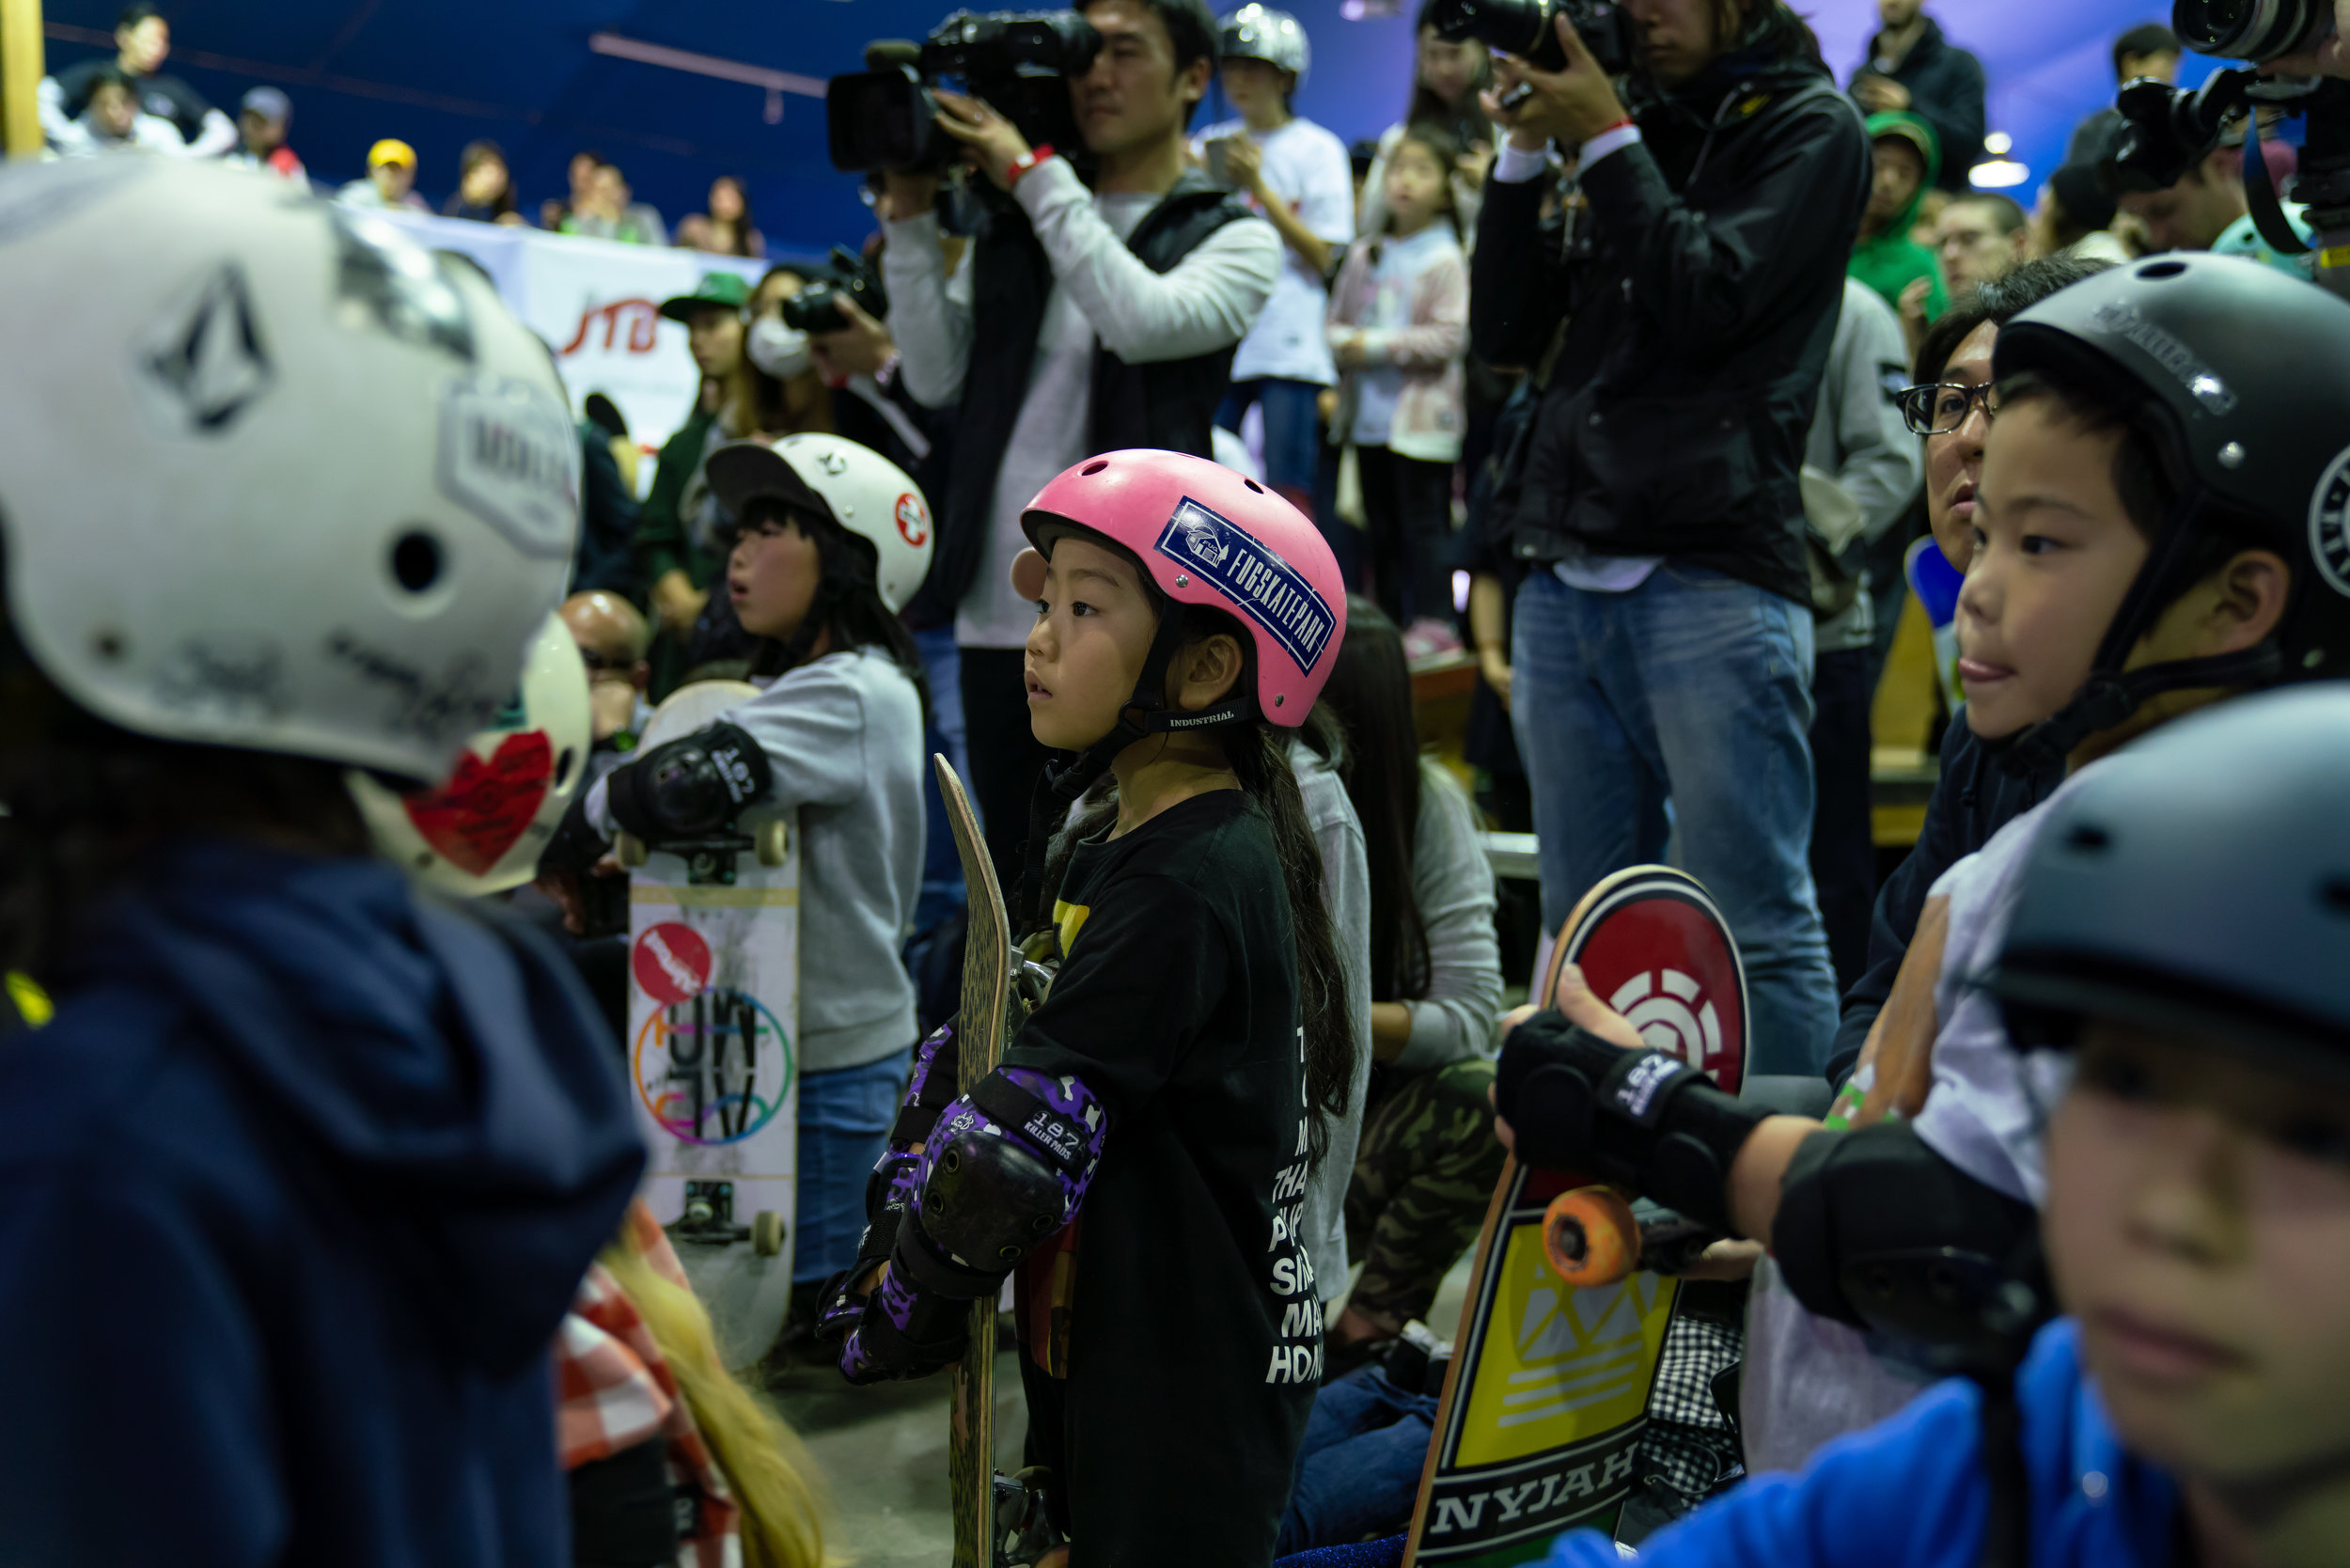 Skate Exchange3_Event Day Japan 2018_hannah bailey00012.jpg